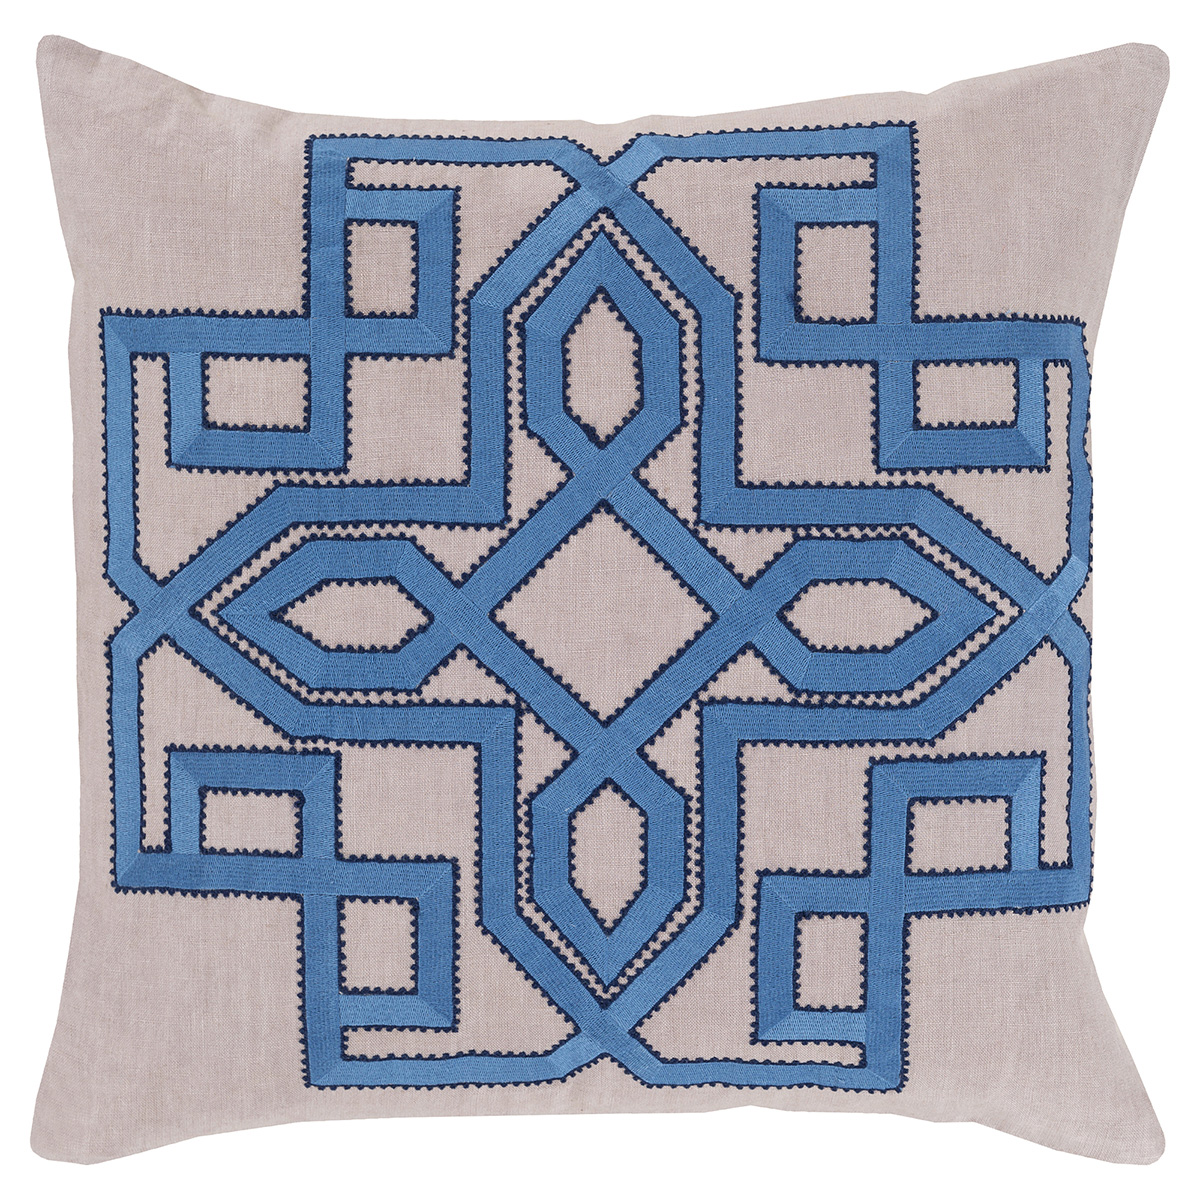 Nesbit Regency Sky Blue Medallion Beige Linen Pillow - 20x20